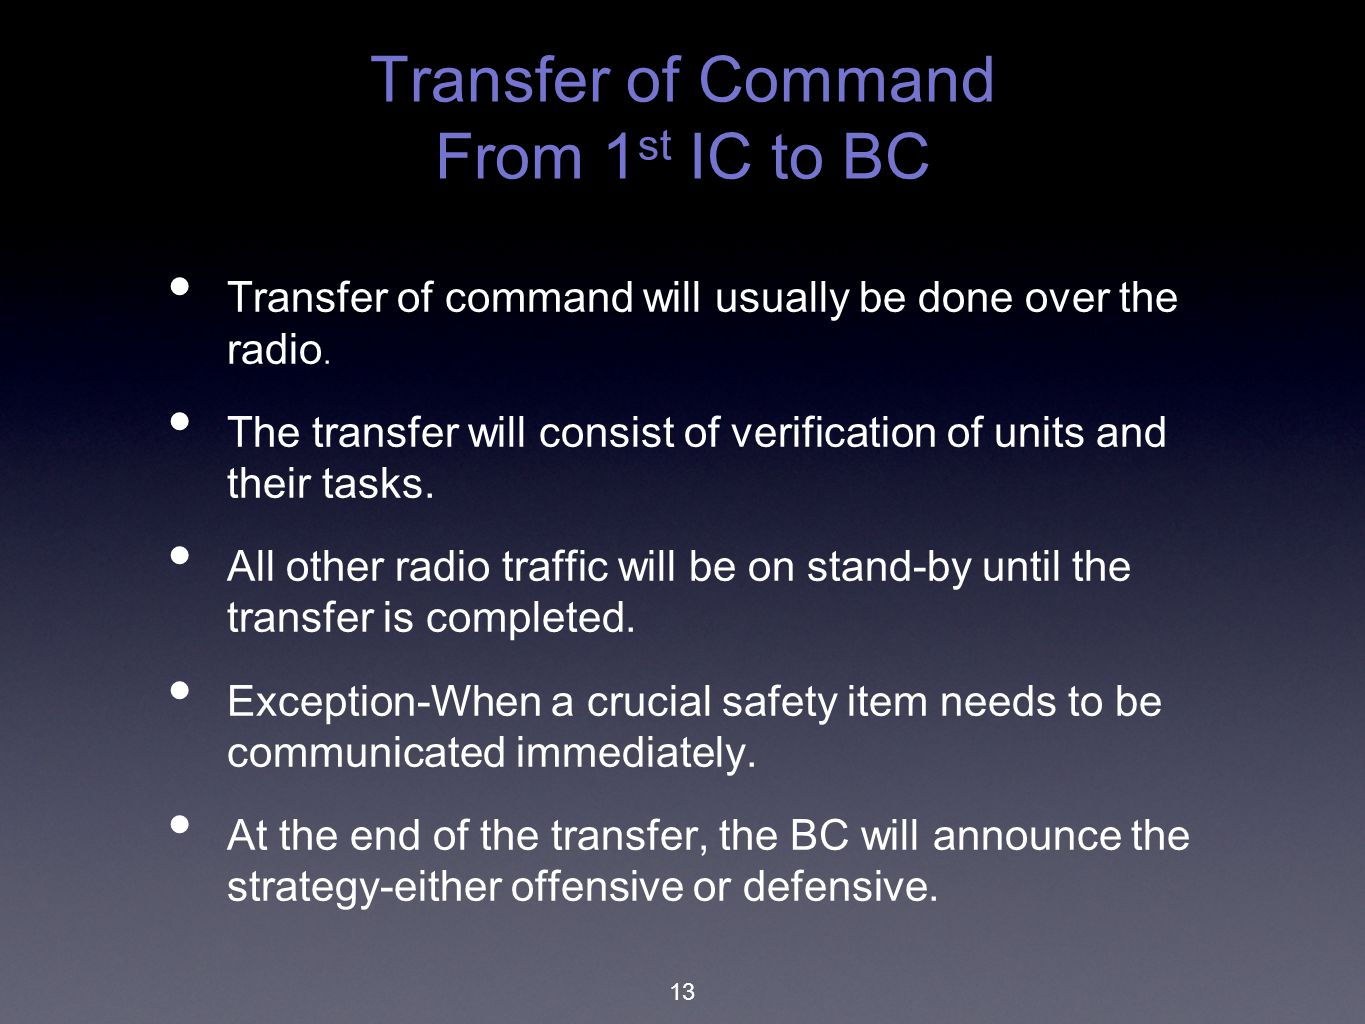 Transfer of Command From 1st IC to BC